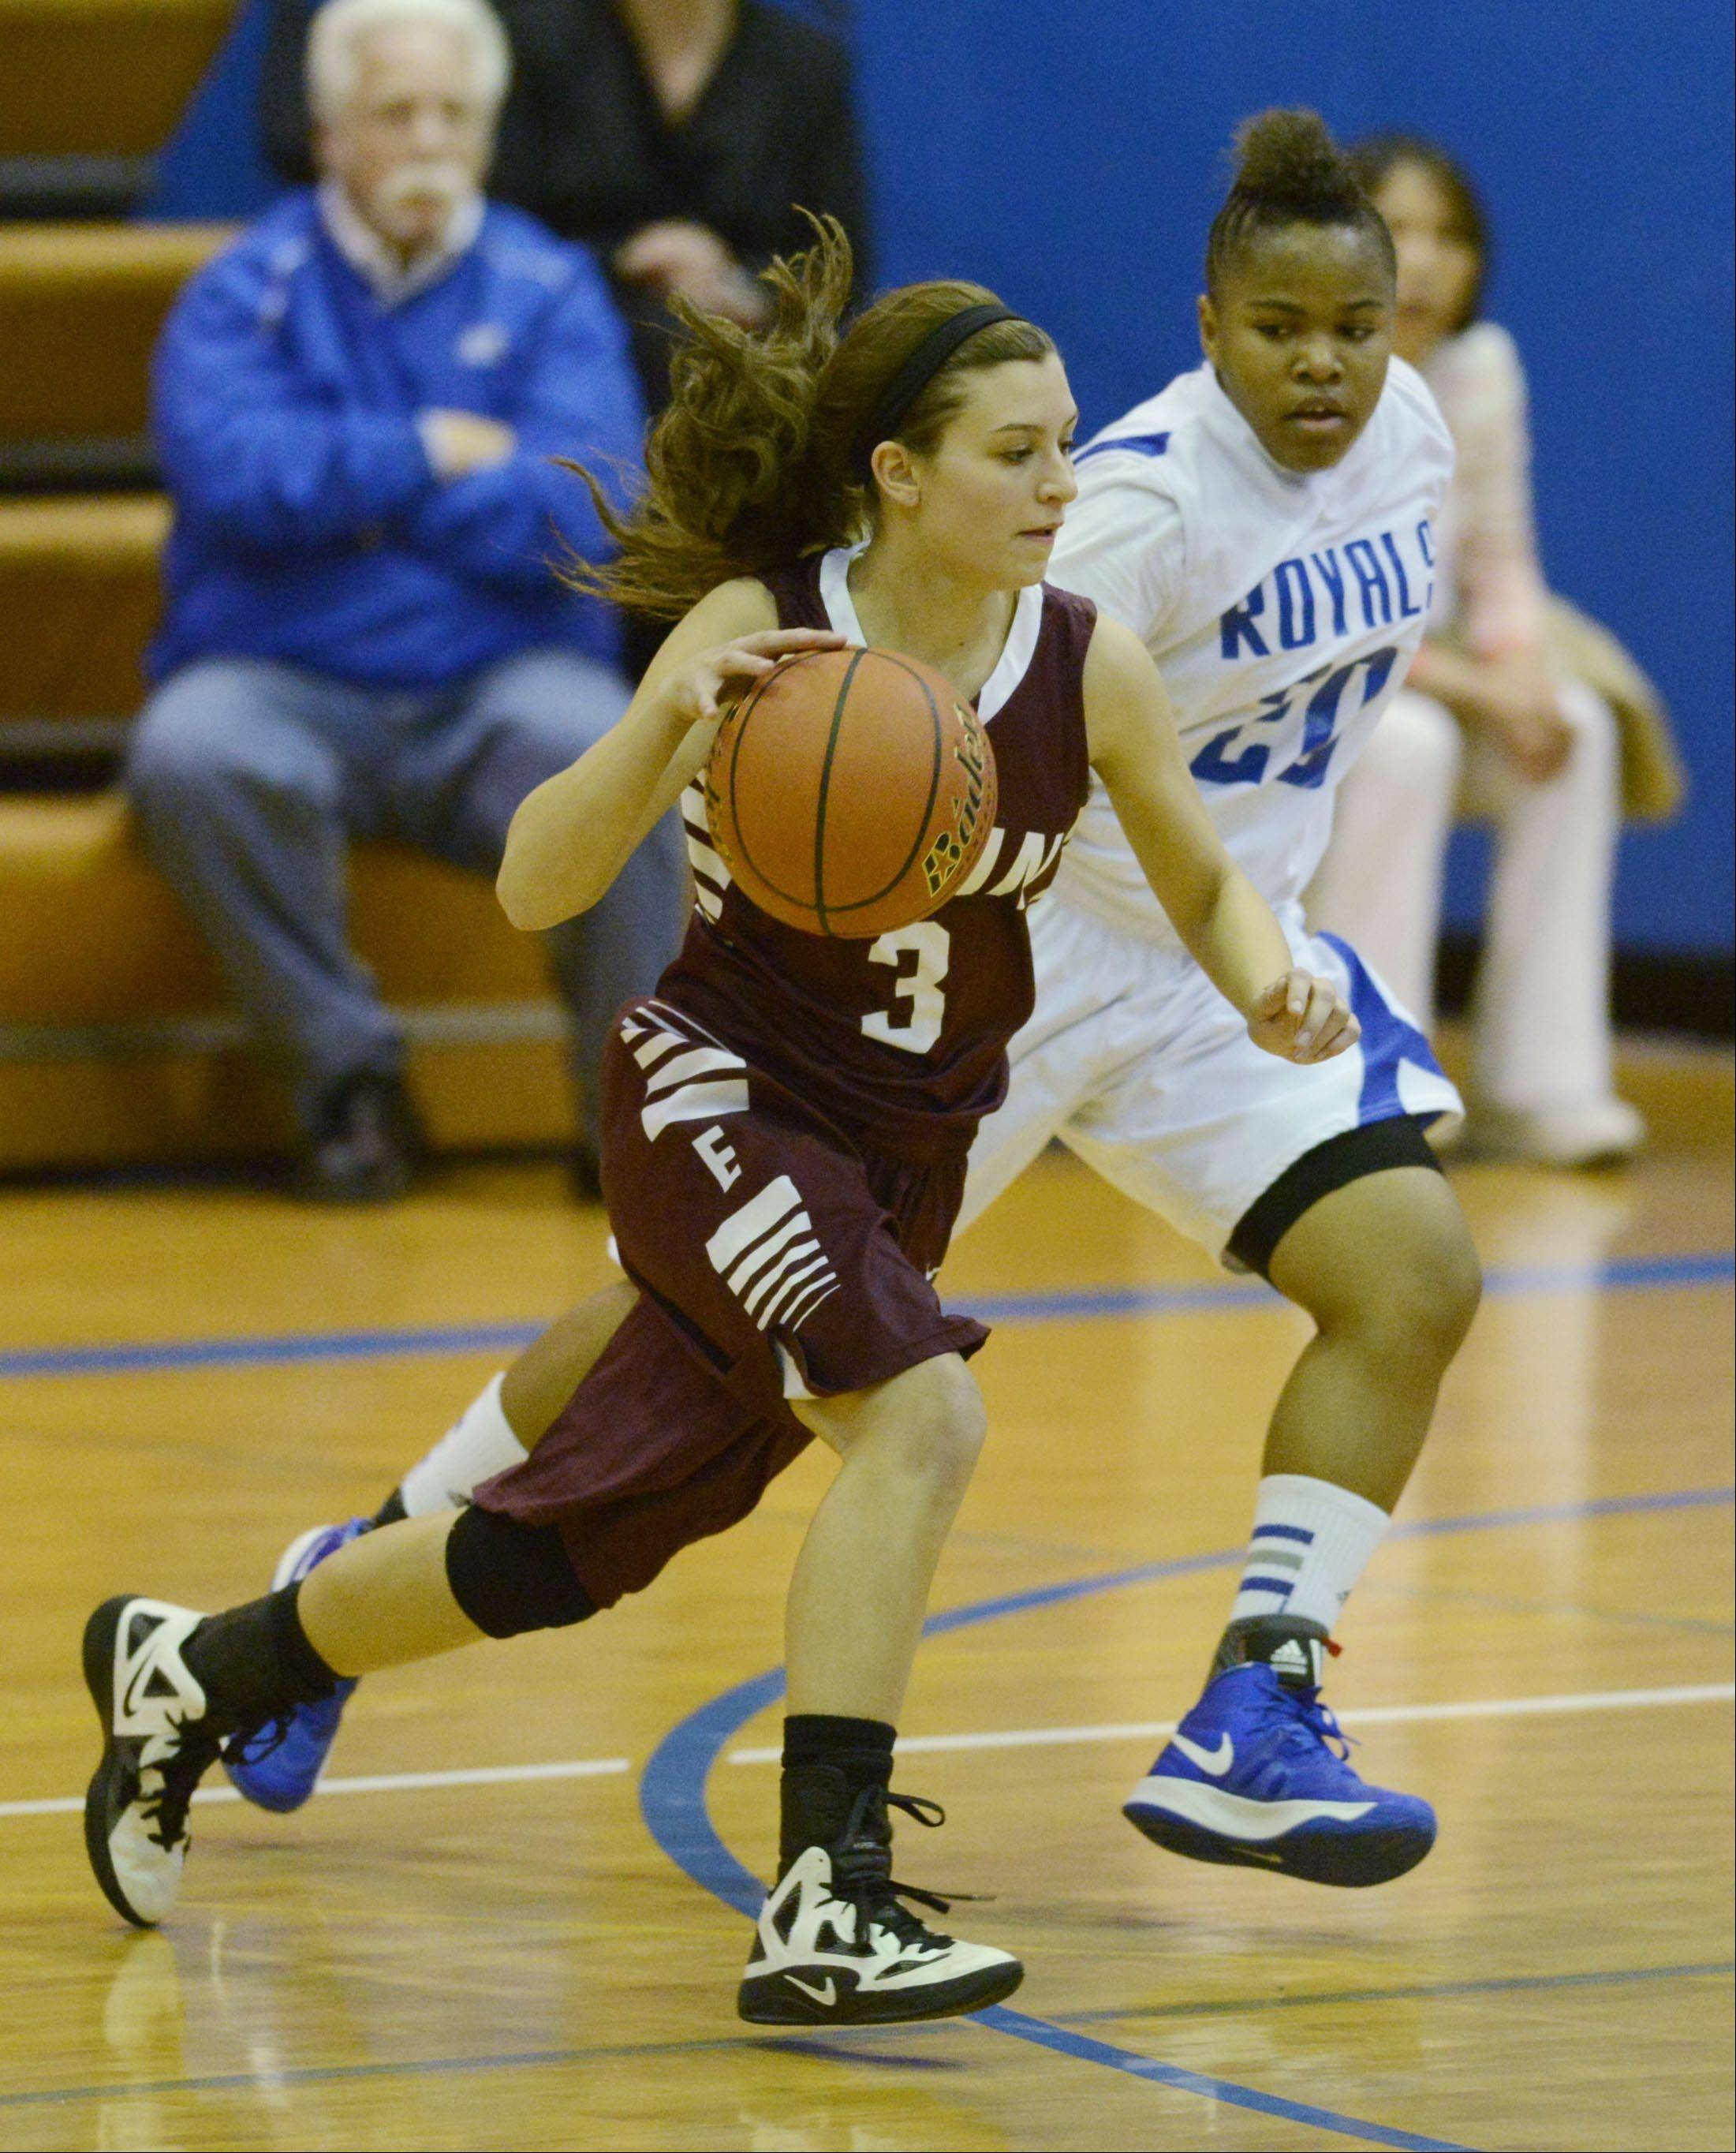 Images from the Elgin vs. Larkin girls basketball game Tuesday, January 8, 2013.